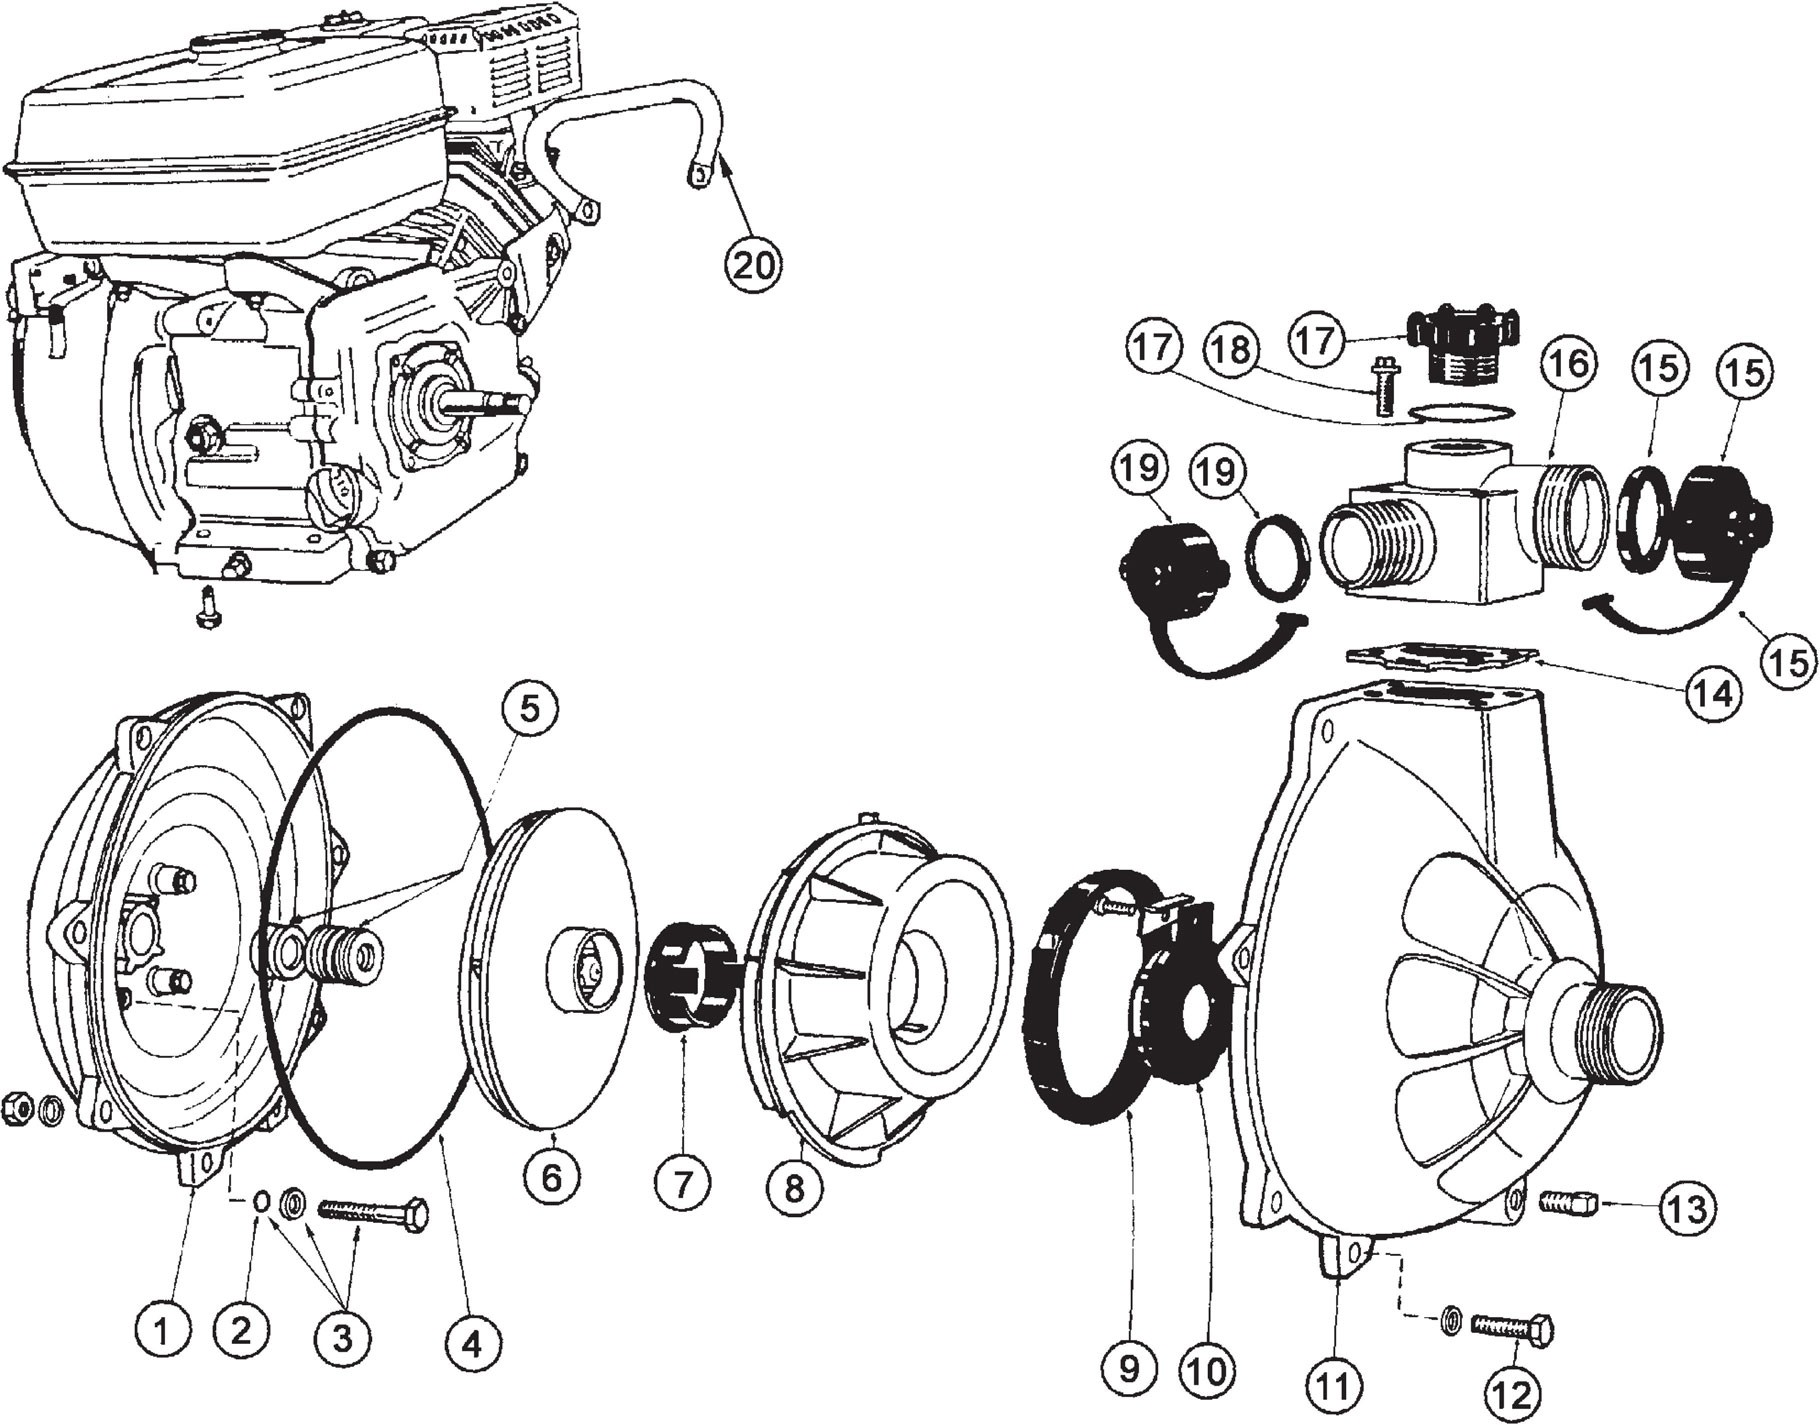 Honda Gx120 Parts Diagram Davey 931 Pump Spares Breakdown Bidgee Pumps & Irrigation Your Of Honda Gx120 Parts Diagram